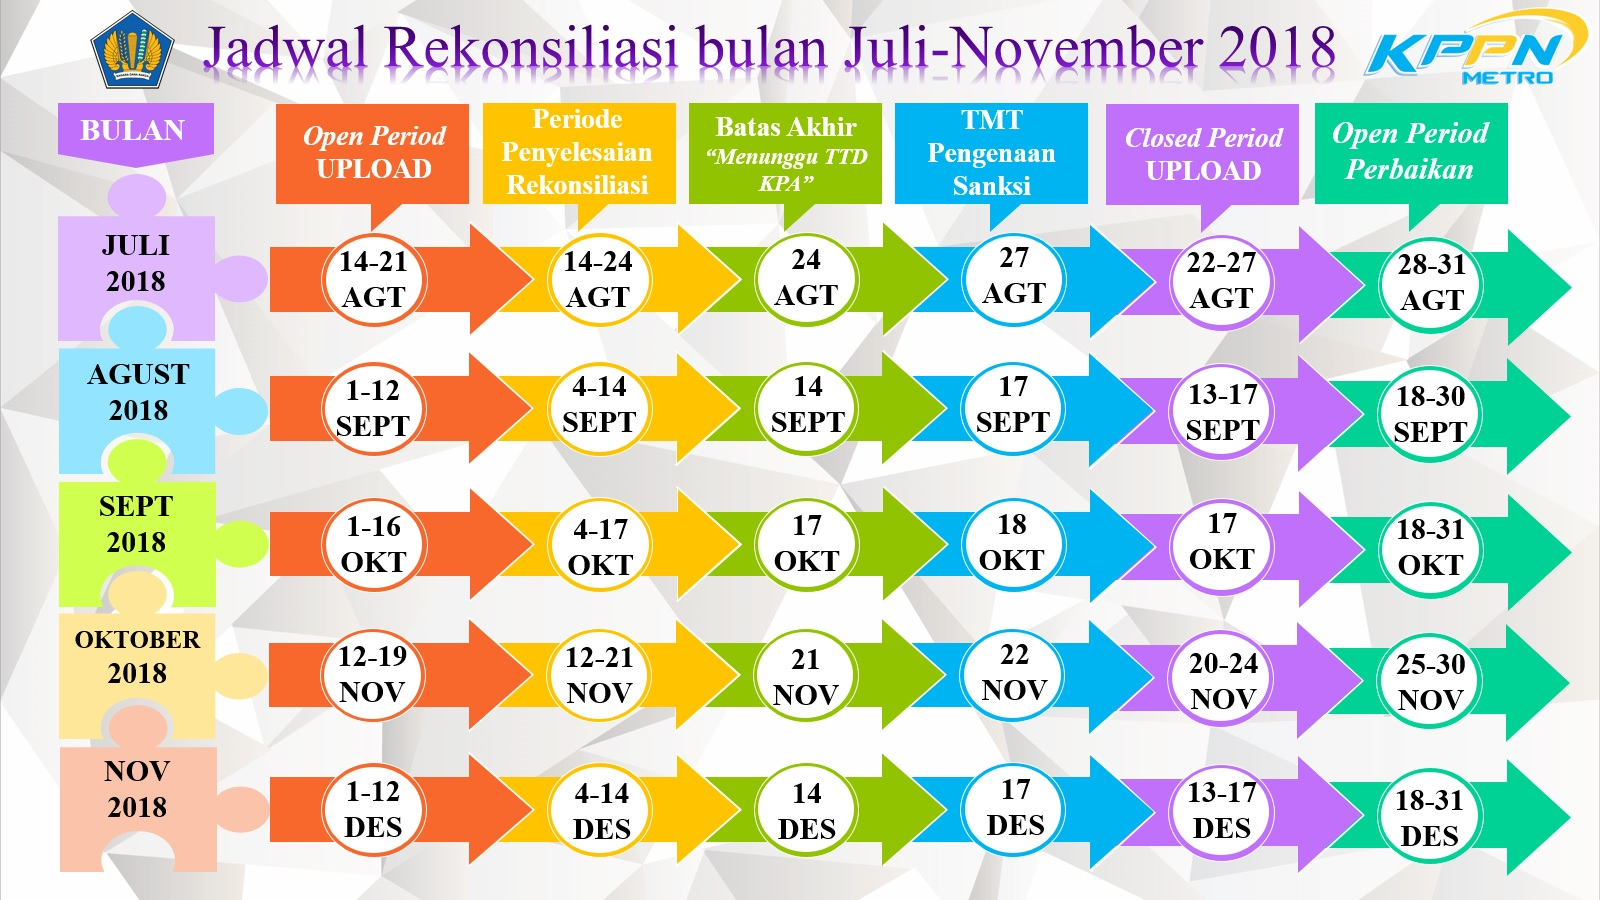 jdl-rekon-jul-nov-2018